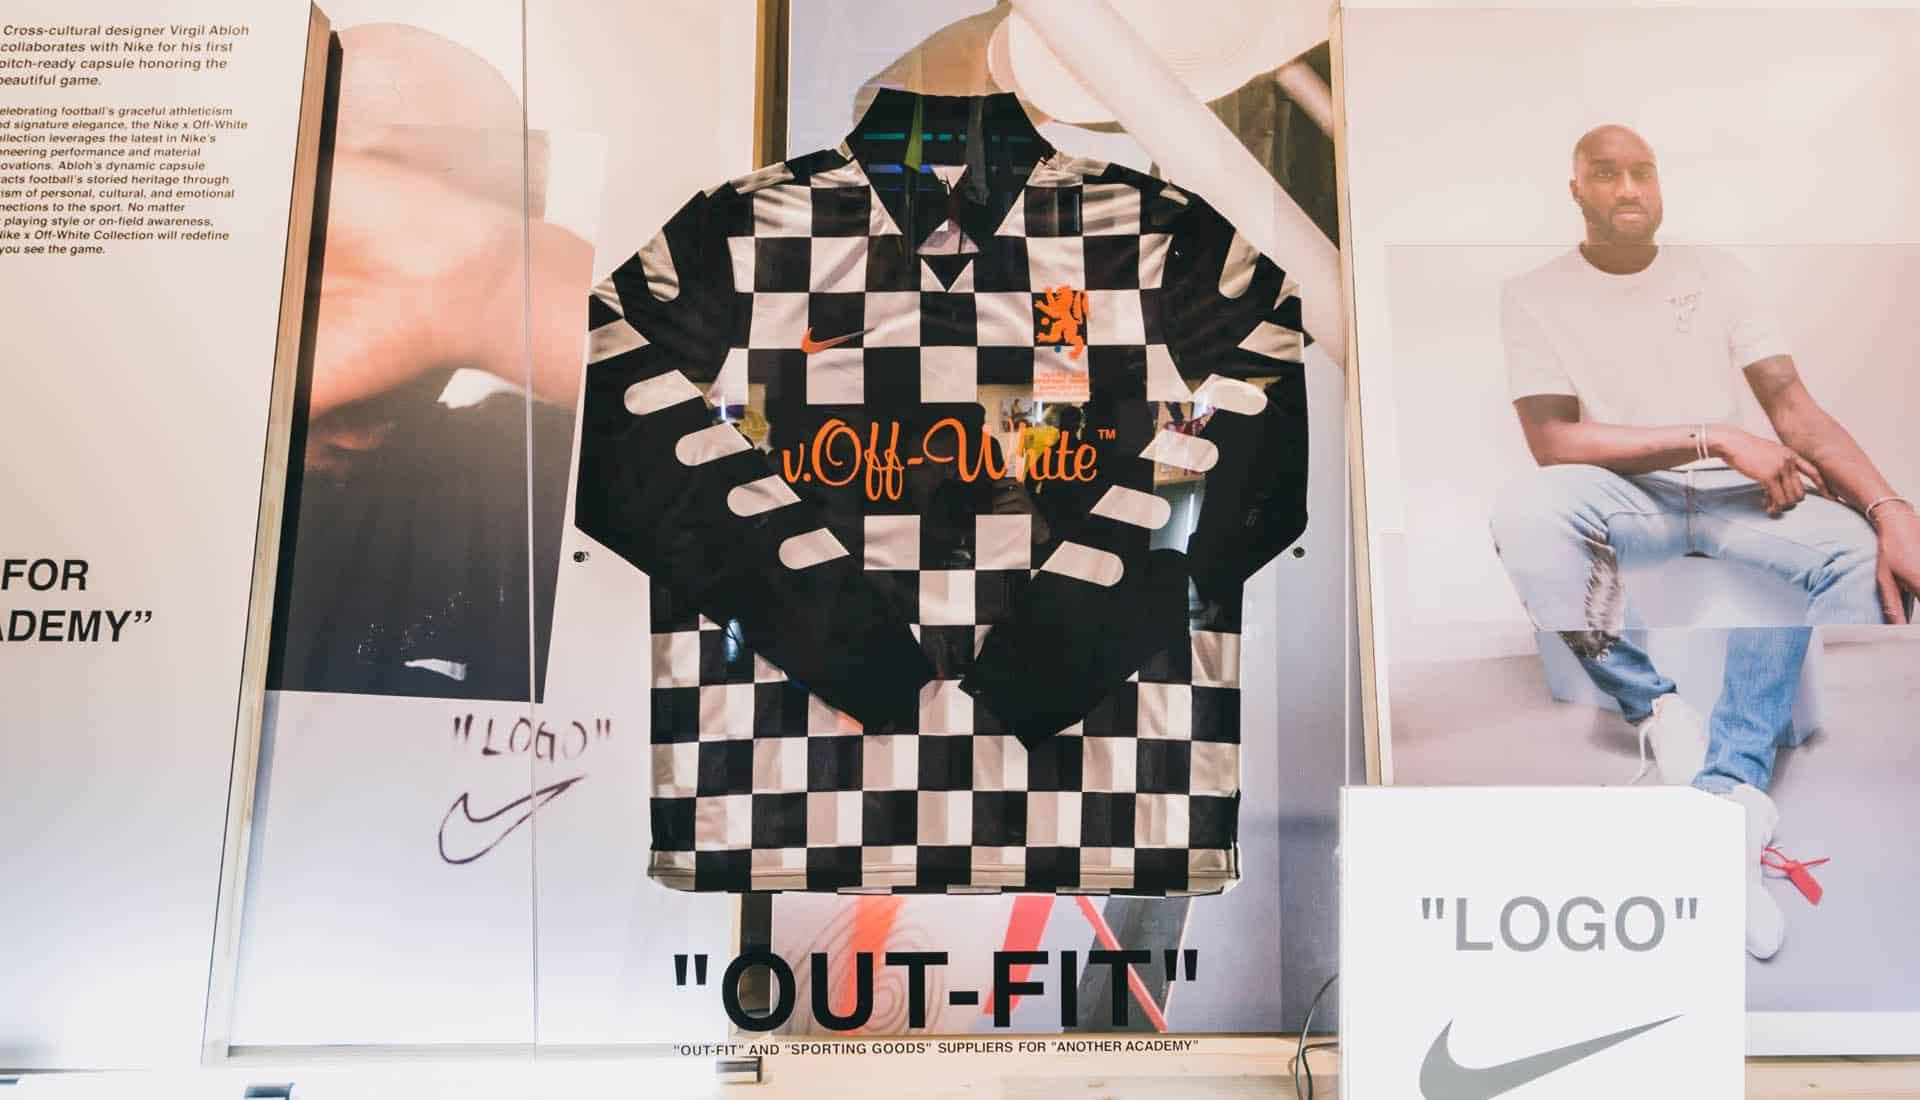 maillots-football-Nike-Off-White-Virgil-Abloh-img1